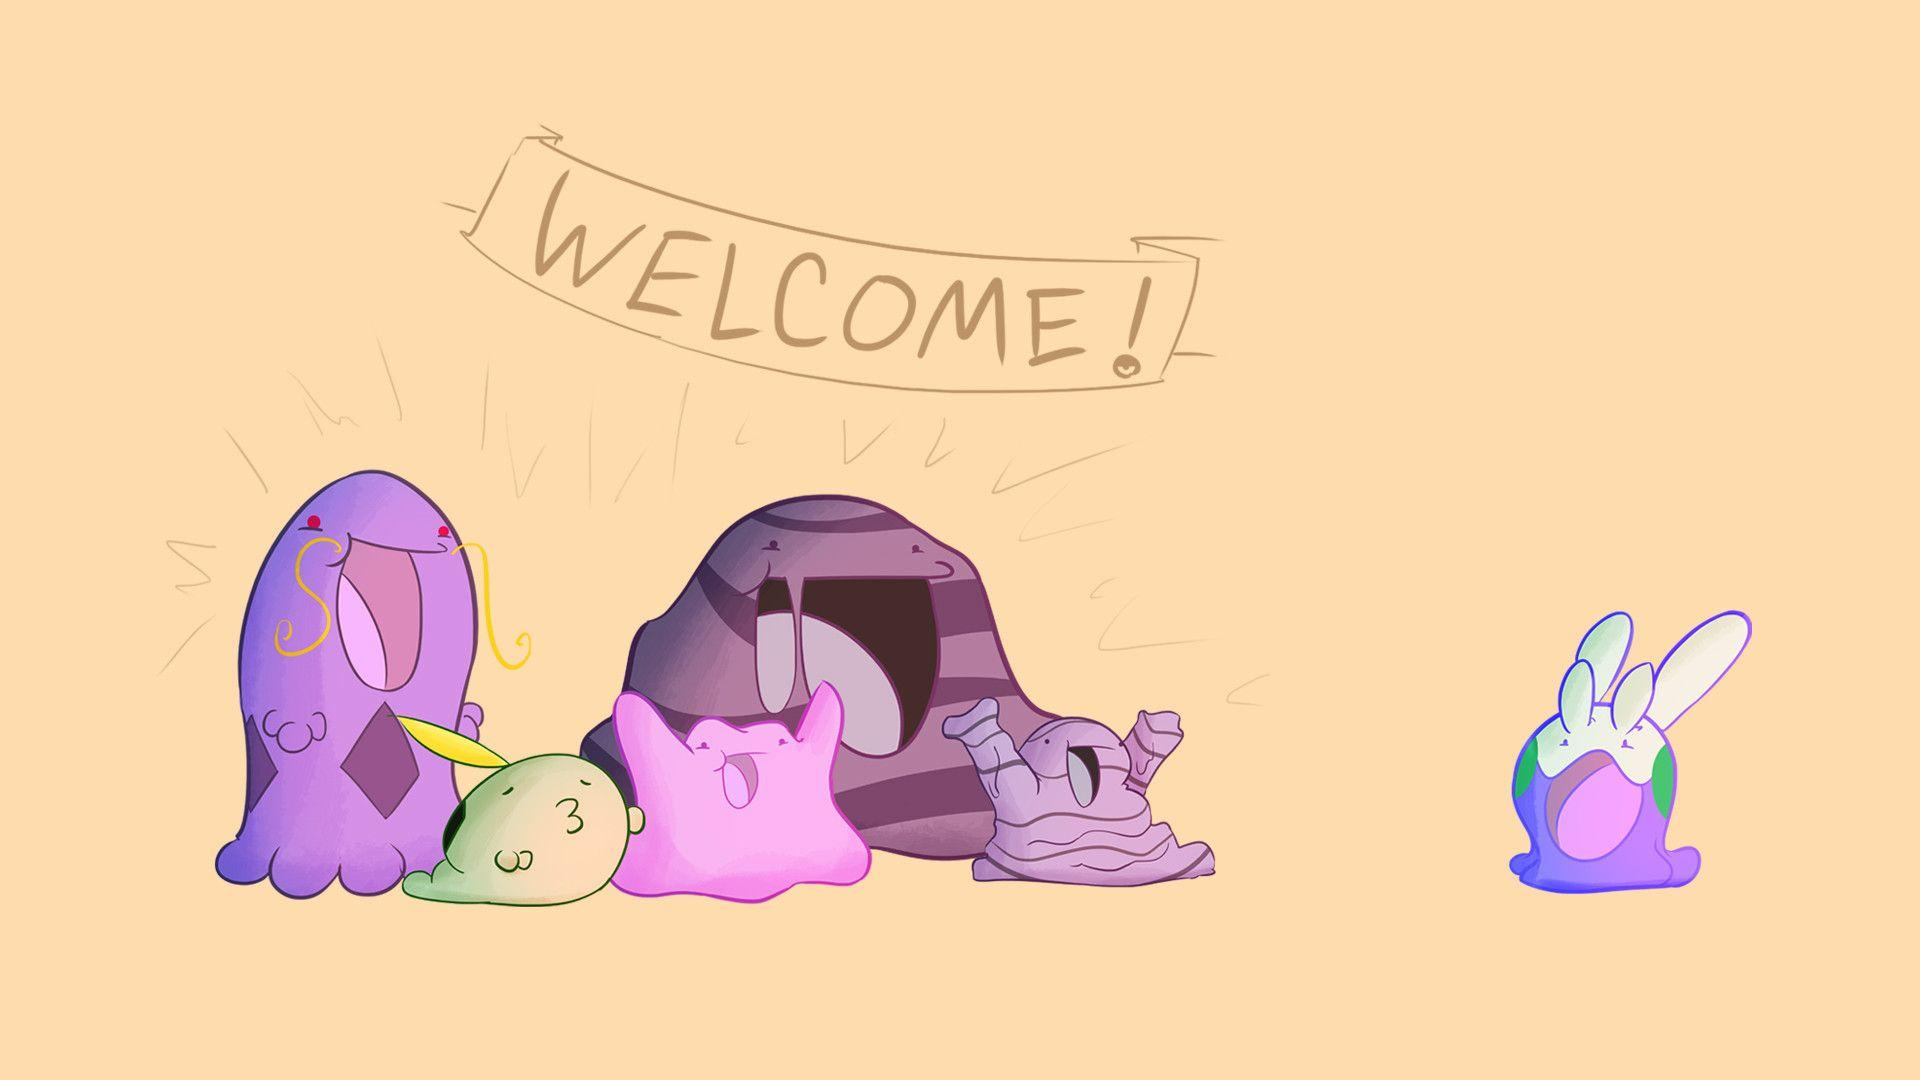 With all the Goomy love here, I thought I'd draw the welcoming party ...